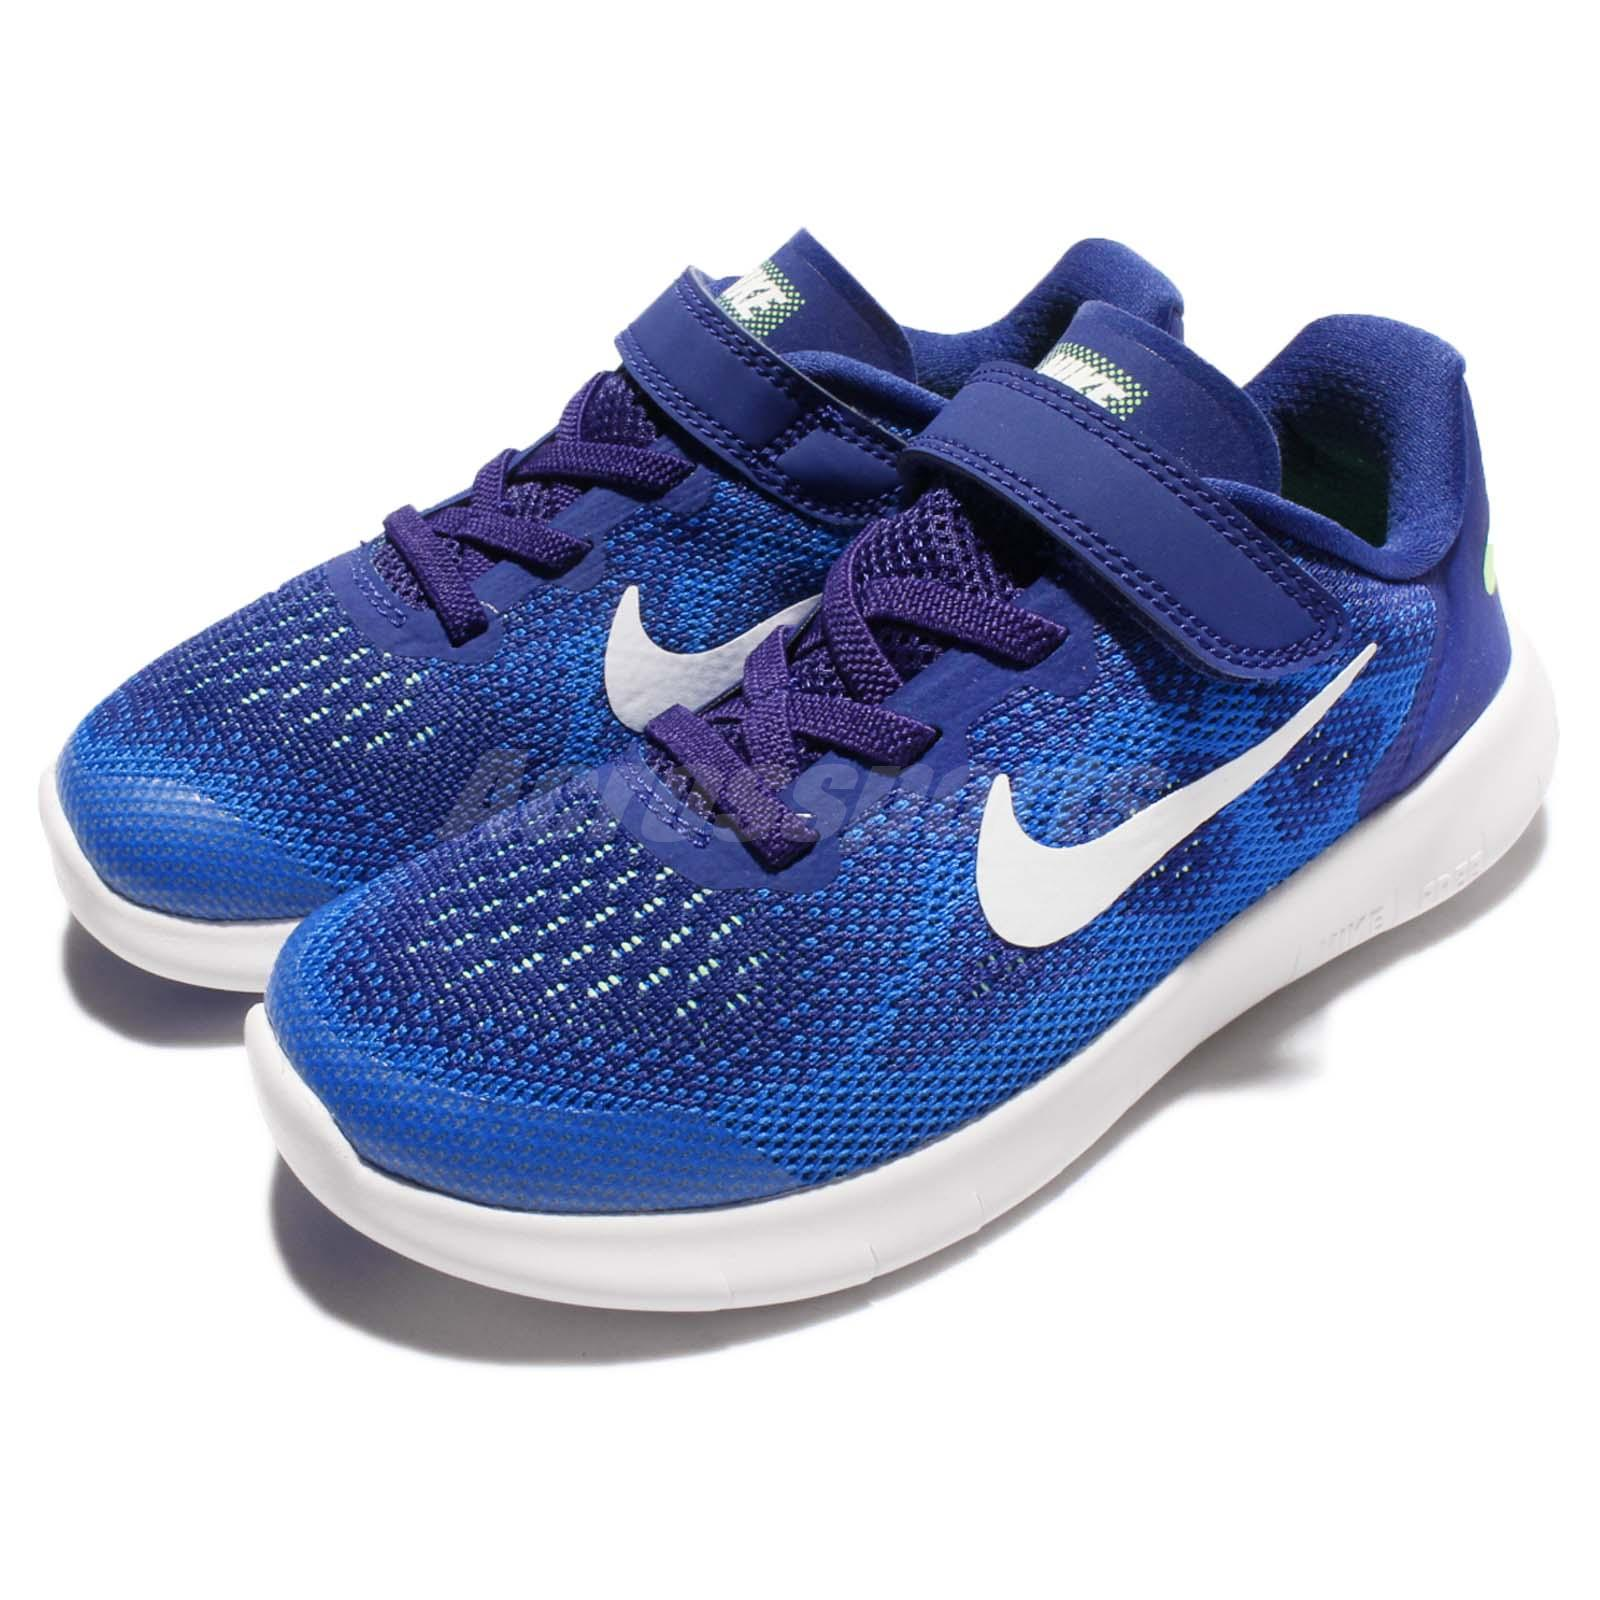 Running Shoes For Girls Nike Size 3 Blue Running Shoes For Girls ... 5ac4ce066